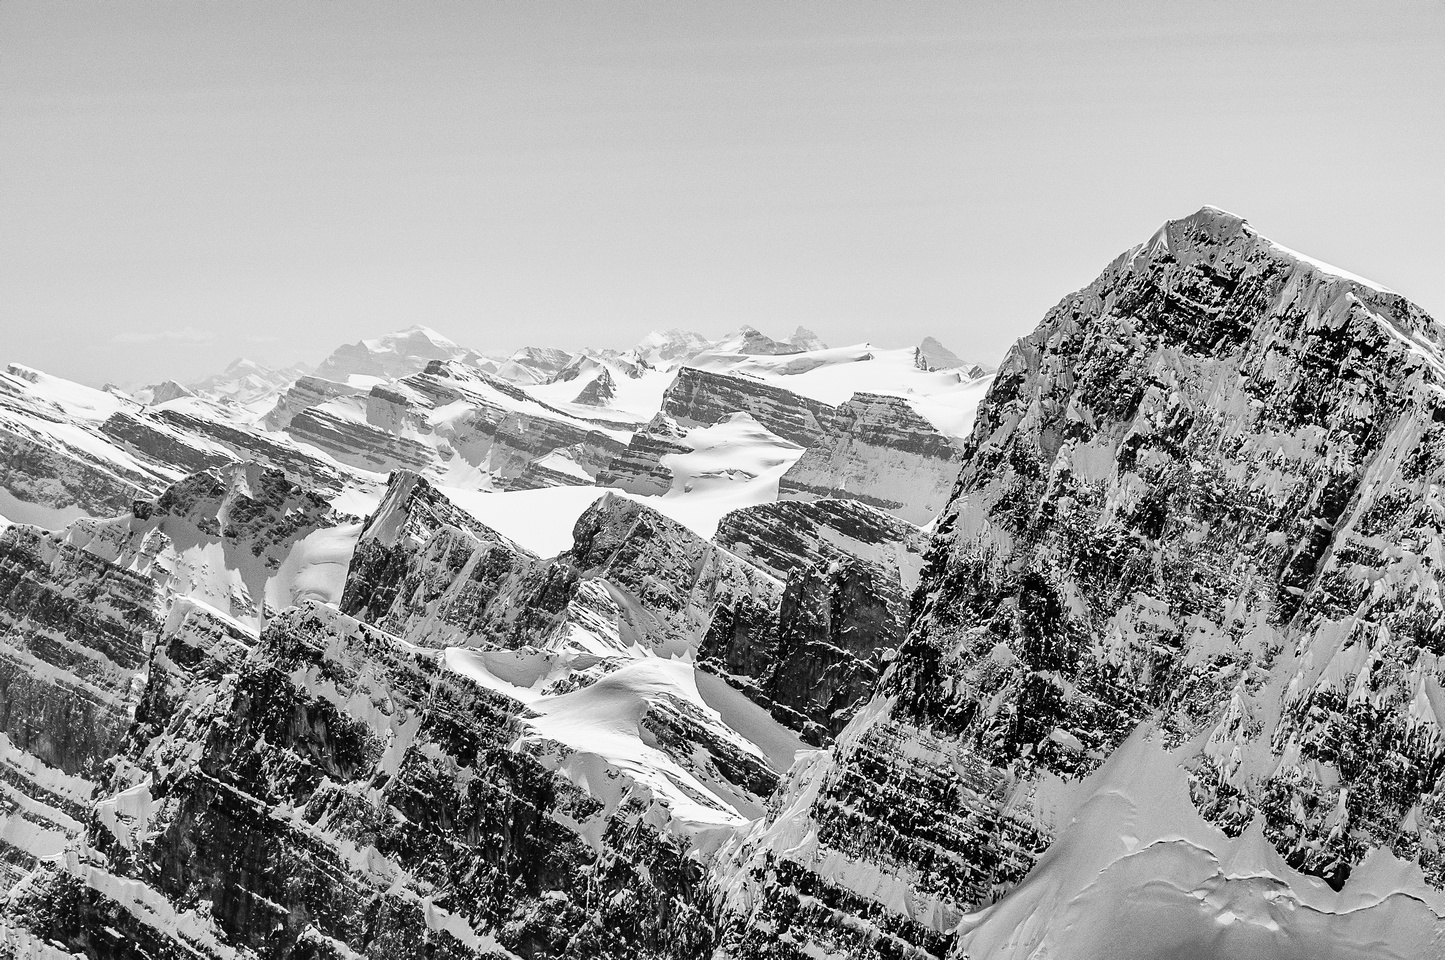 Mount Temple in the far distance with some Wapta peaks recognizable in front, including Thompson, Peyto, Olive, Rhondda and Habel.